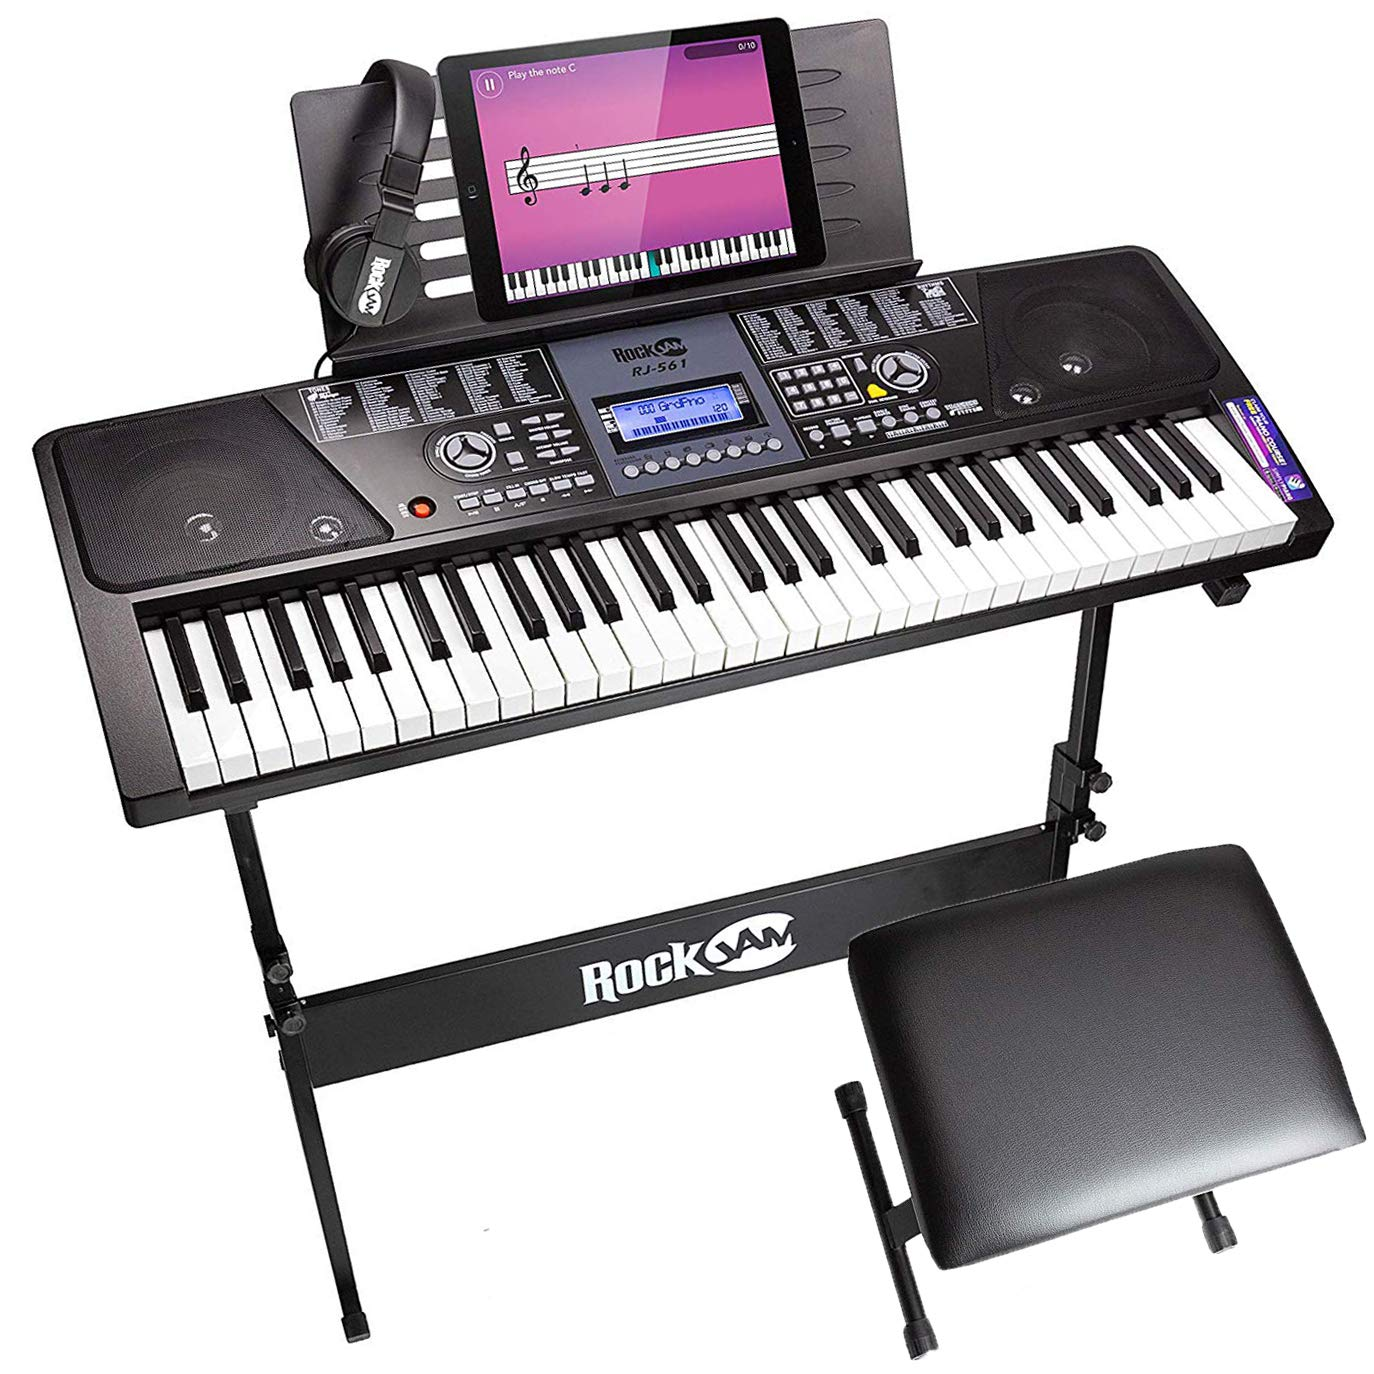 RockJam 561 Electronic 61 Key Digital Piano Keyboard SuperKit with Stand,  Stool, Headphones, Includes Piano Maestro Teaching App with 30 Songs